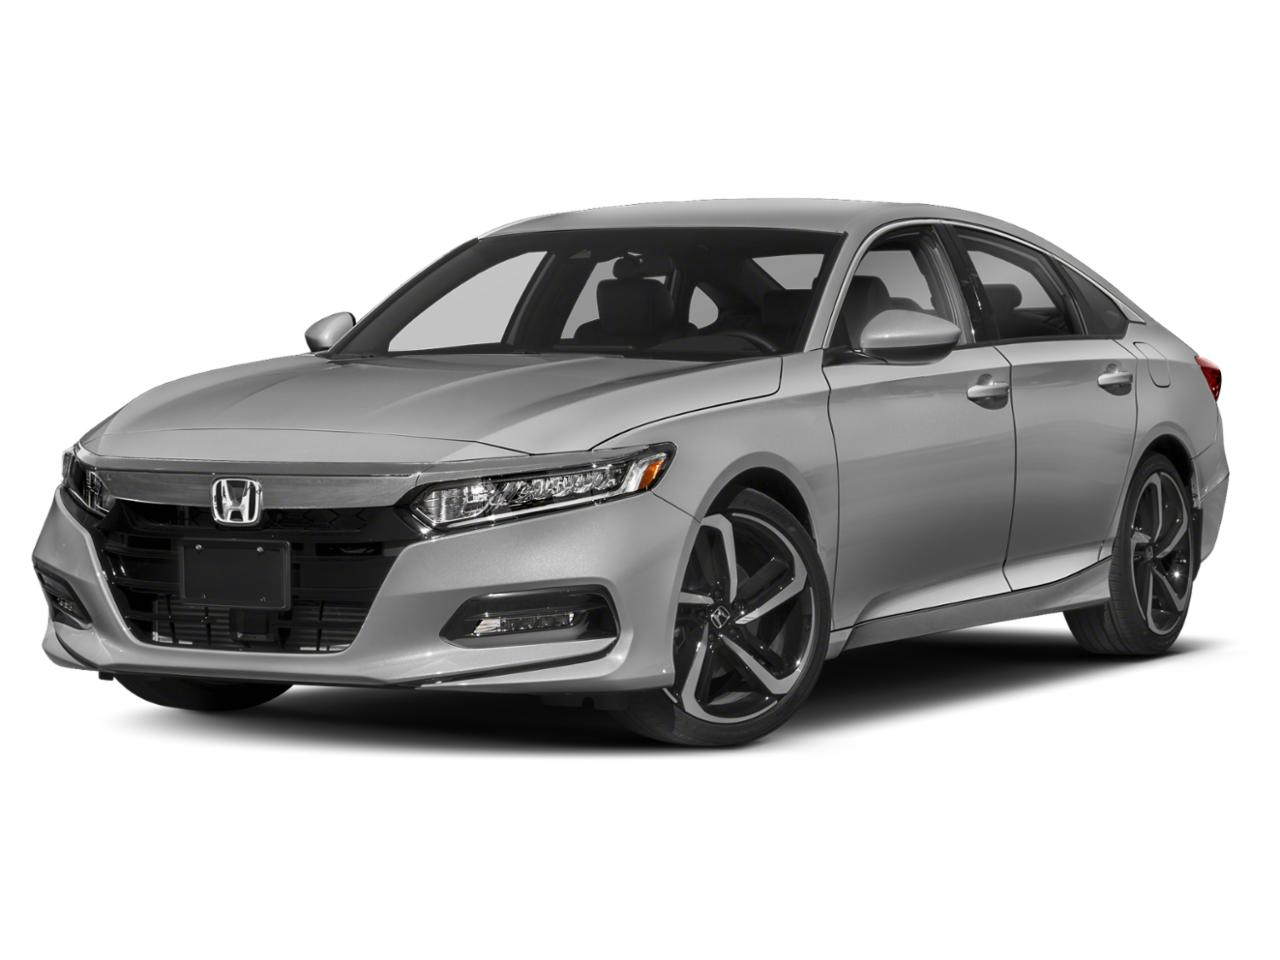 2018 Honda Accord Sedan Vehicle Photo in Fort Worth, TX 76116